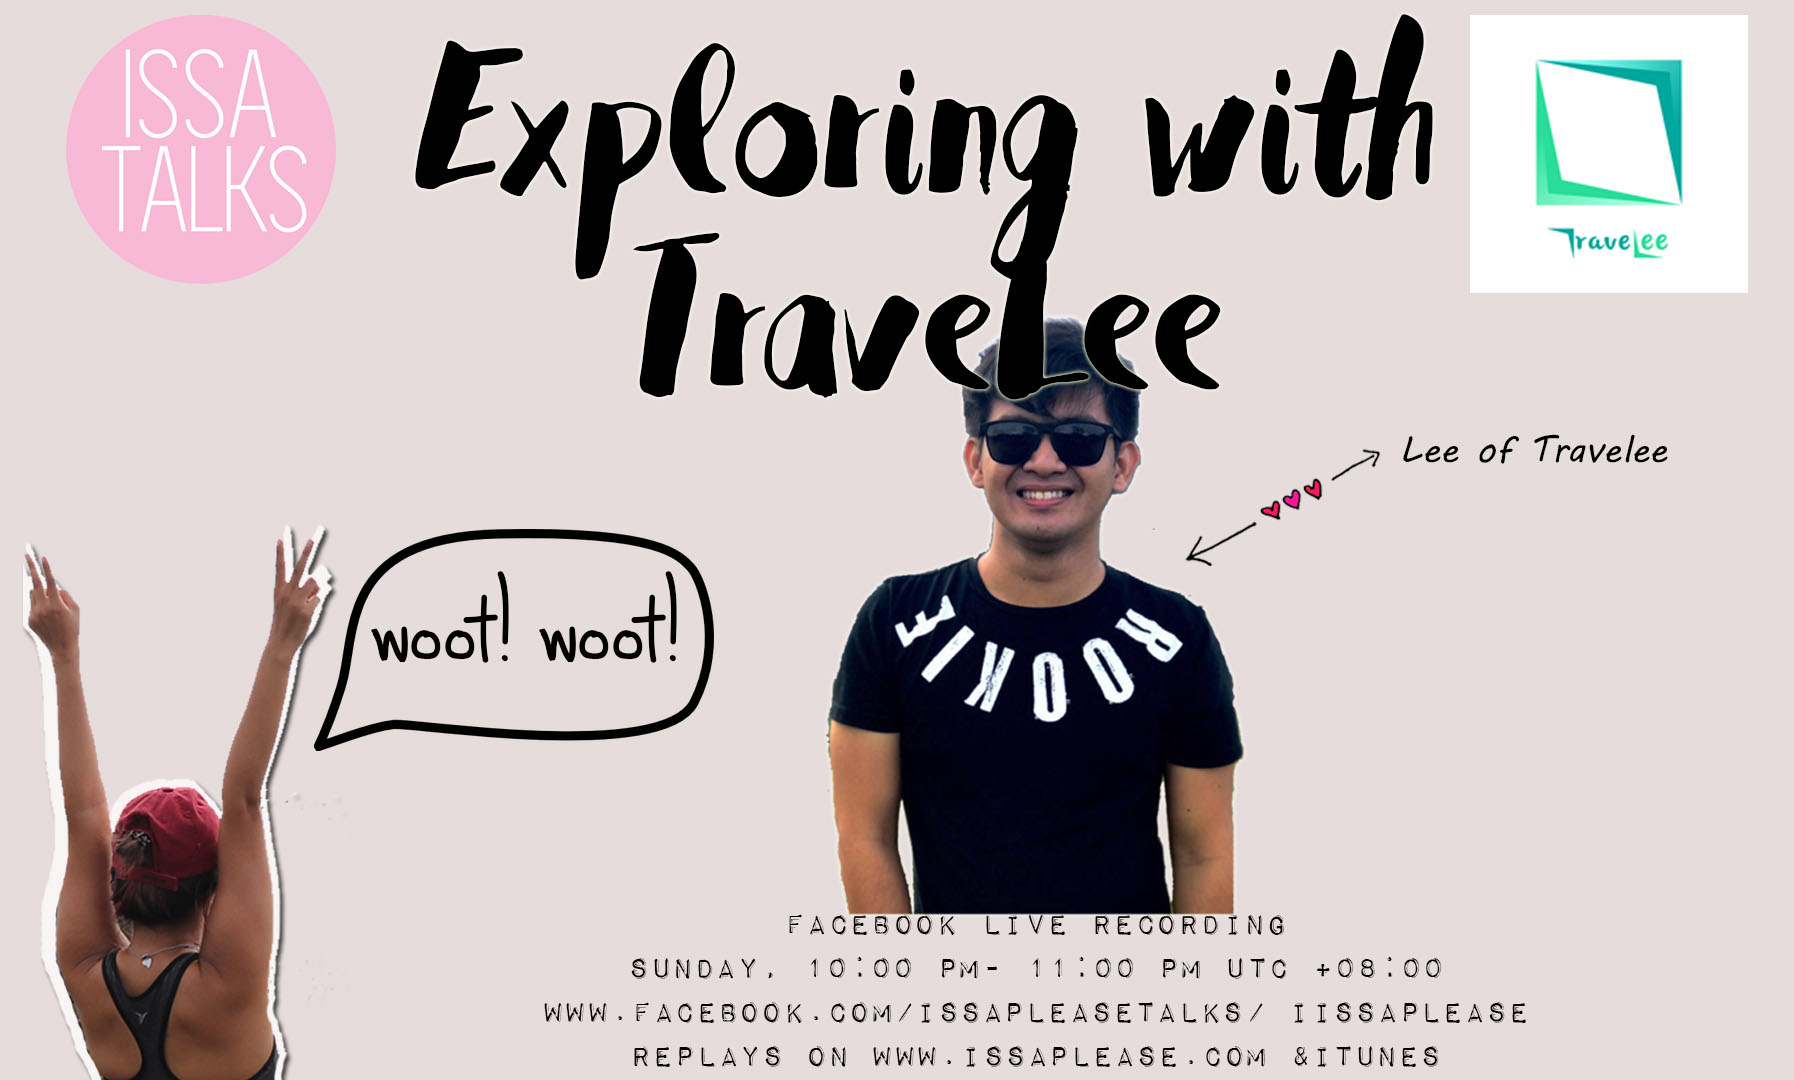 IssaTalks (Episode 28) with Travelee: Exploring Cebu & The Philippines